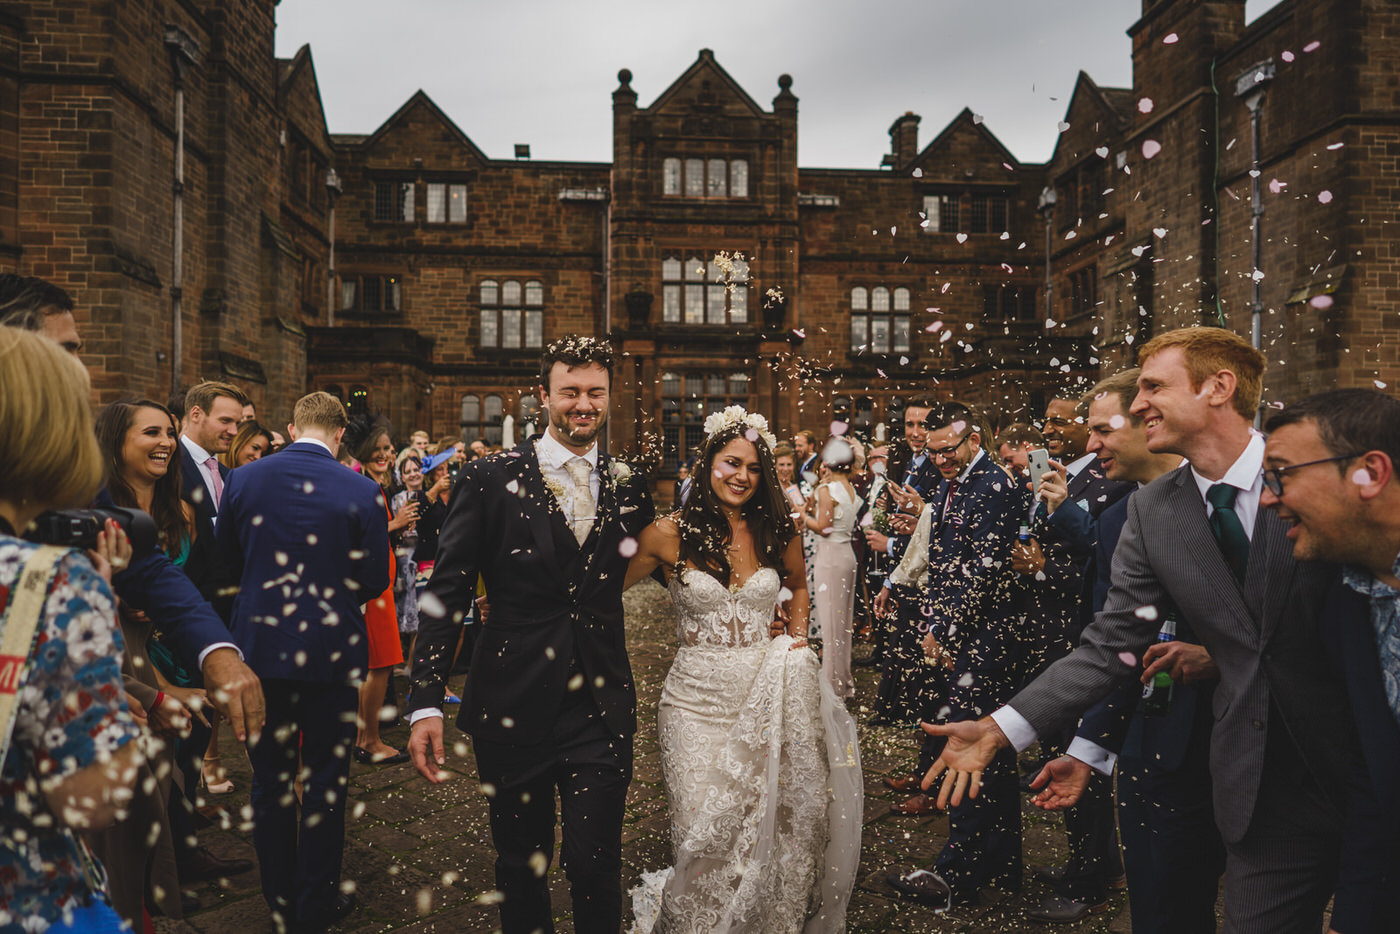 the happy couple are showered with confetti by their wedding guests